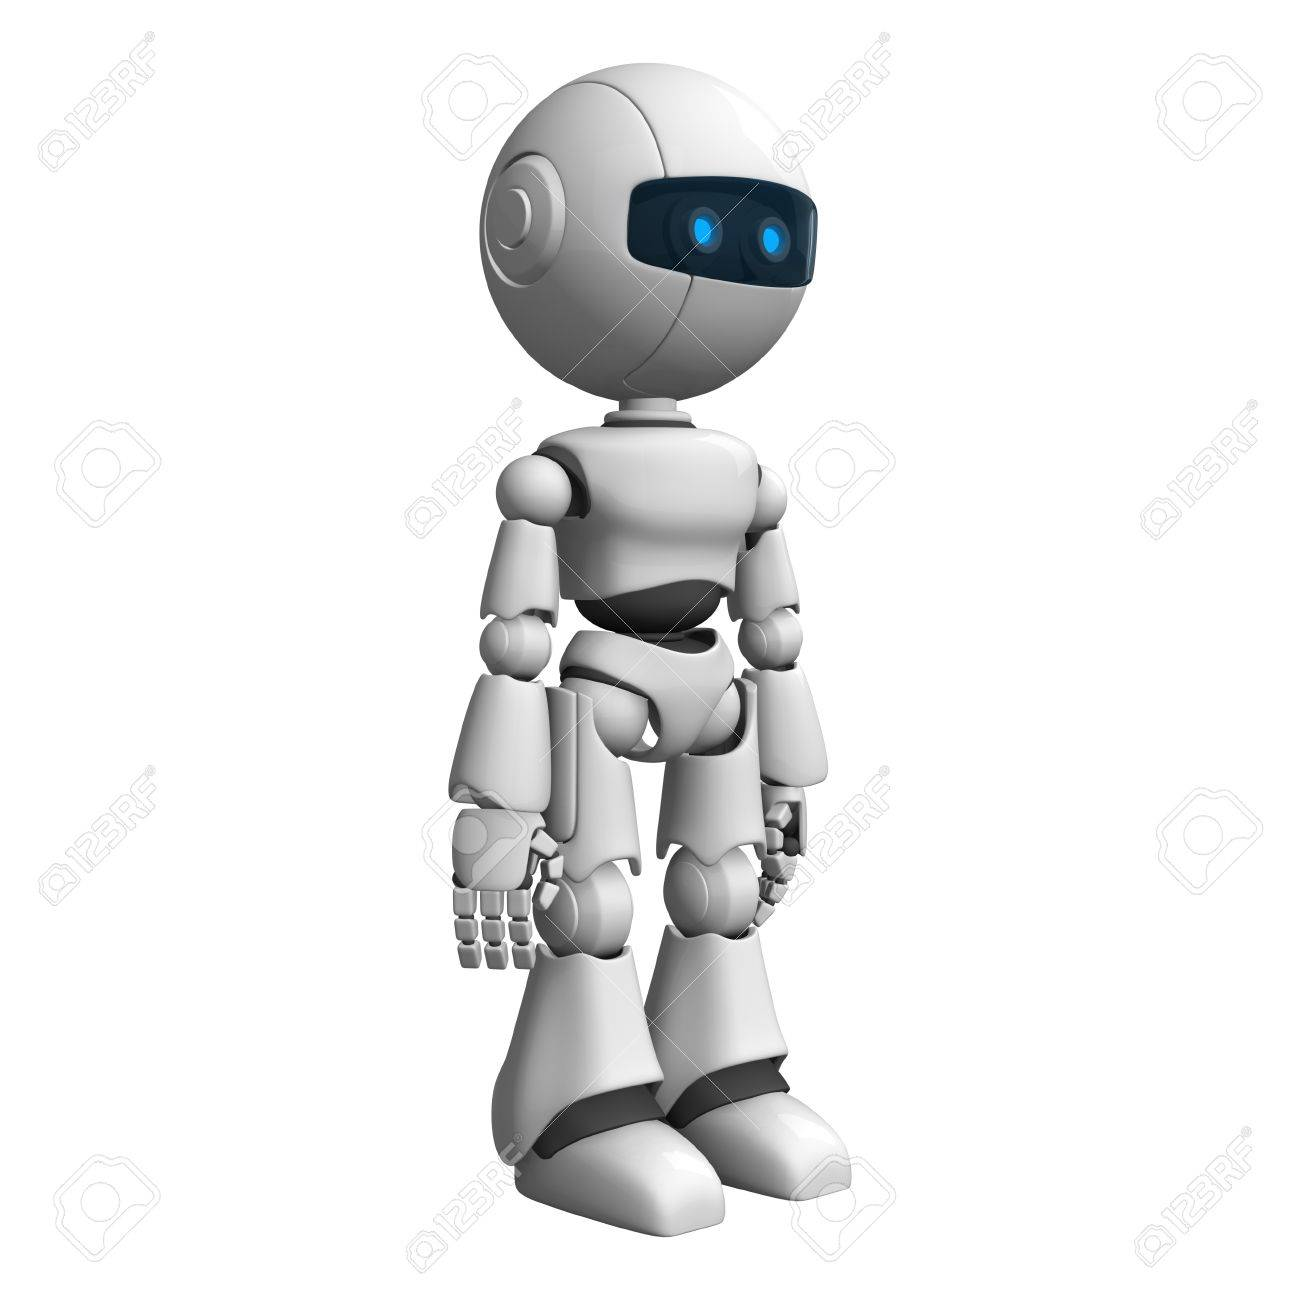 Funny robot stay and look Stock Photo - 10065361